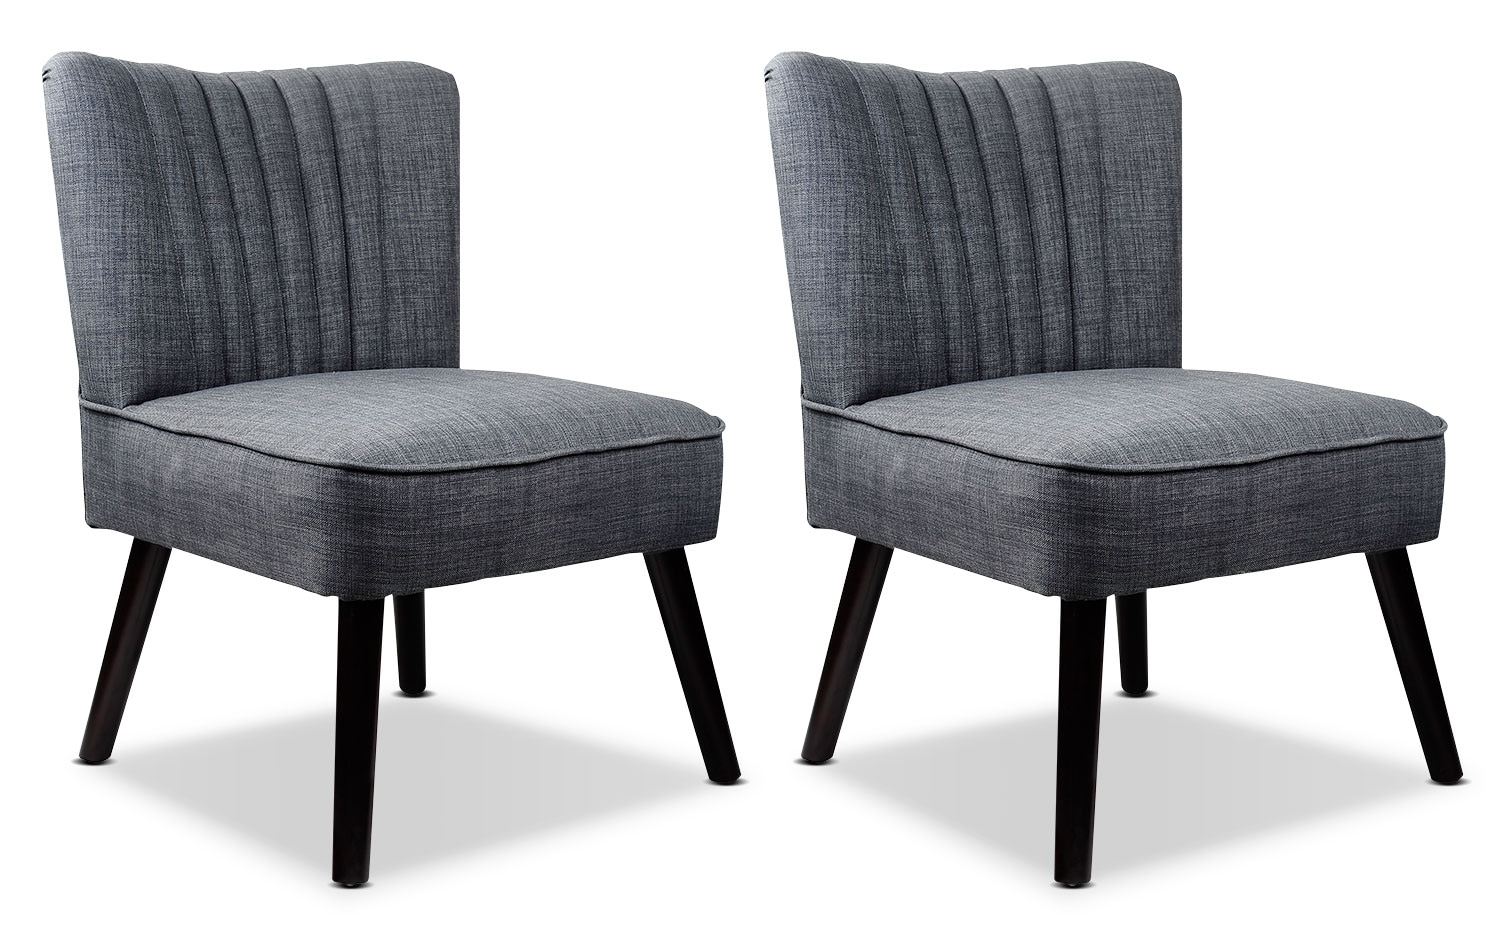 LAD Linen-Like Fabric Accent Chairs, Set of 2 – Grey